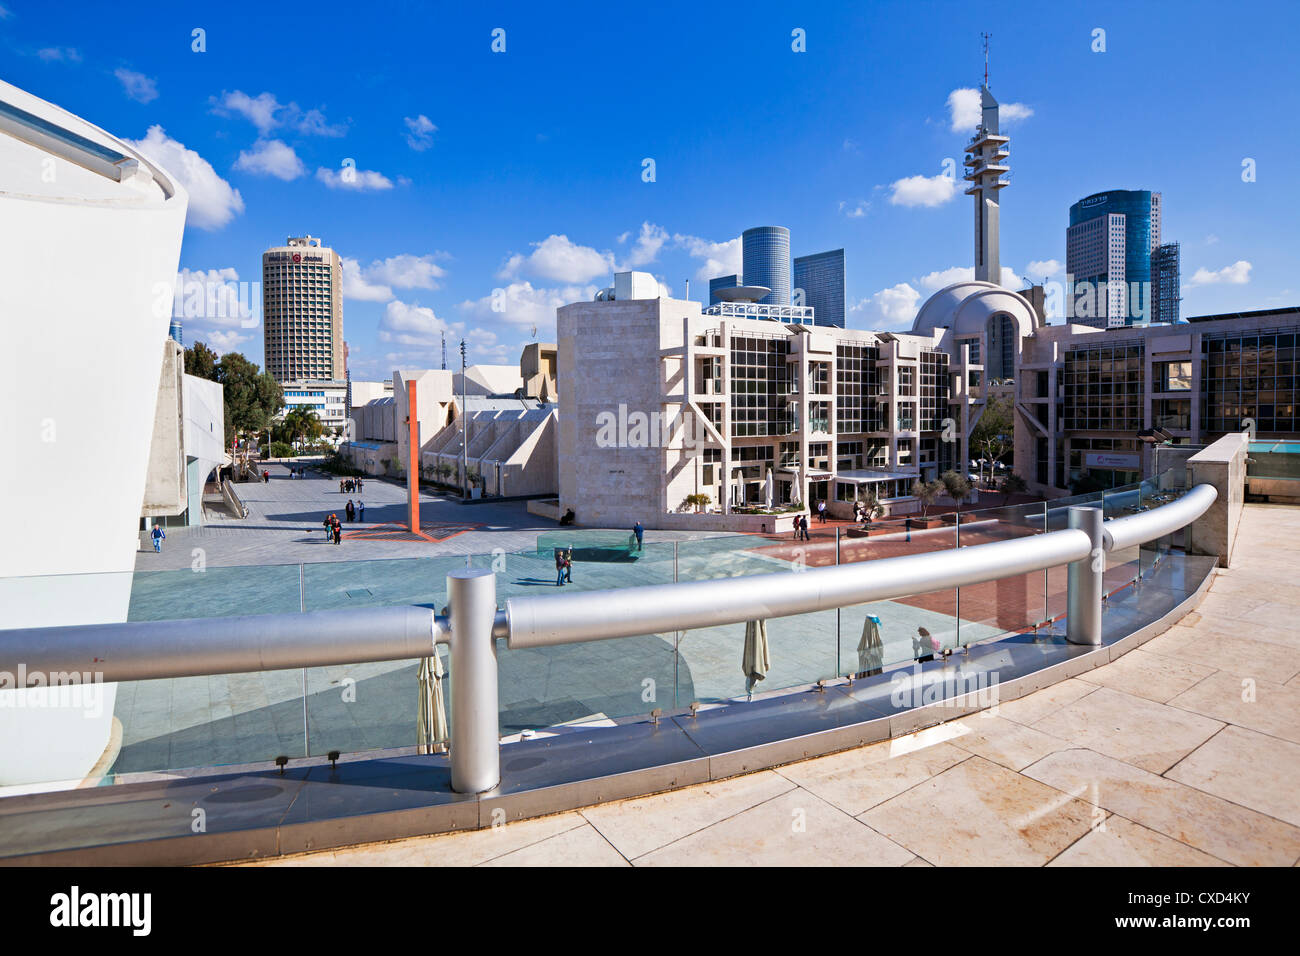 View towards the Central Library and buildings of Azrieli Center, Tel Aviv, Israel, Middle East - Stock Image